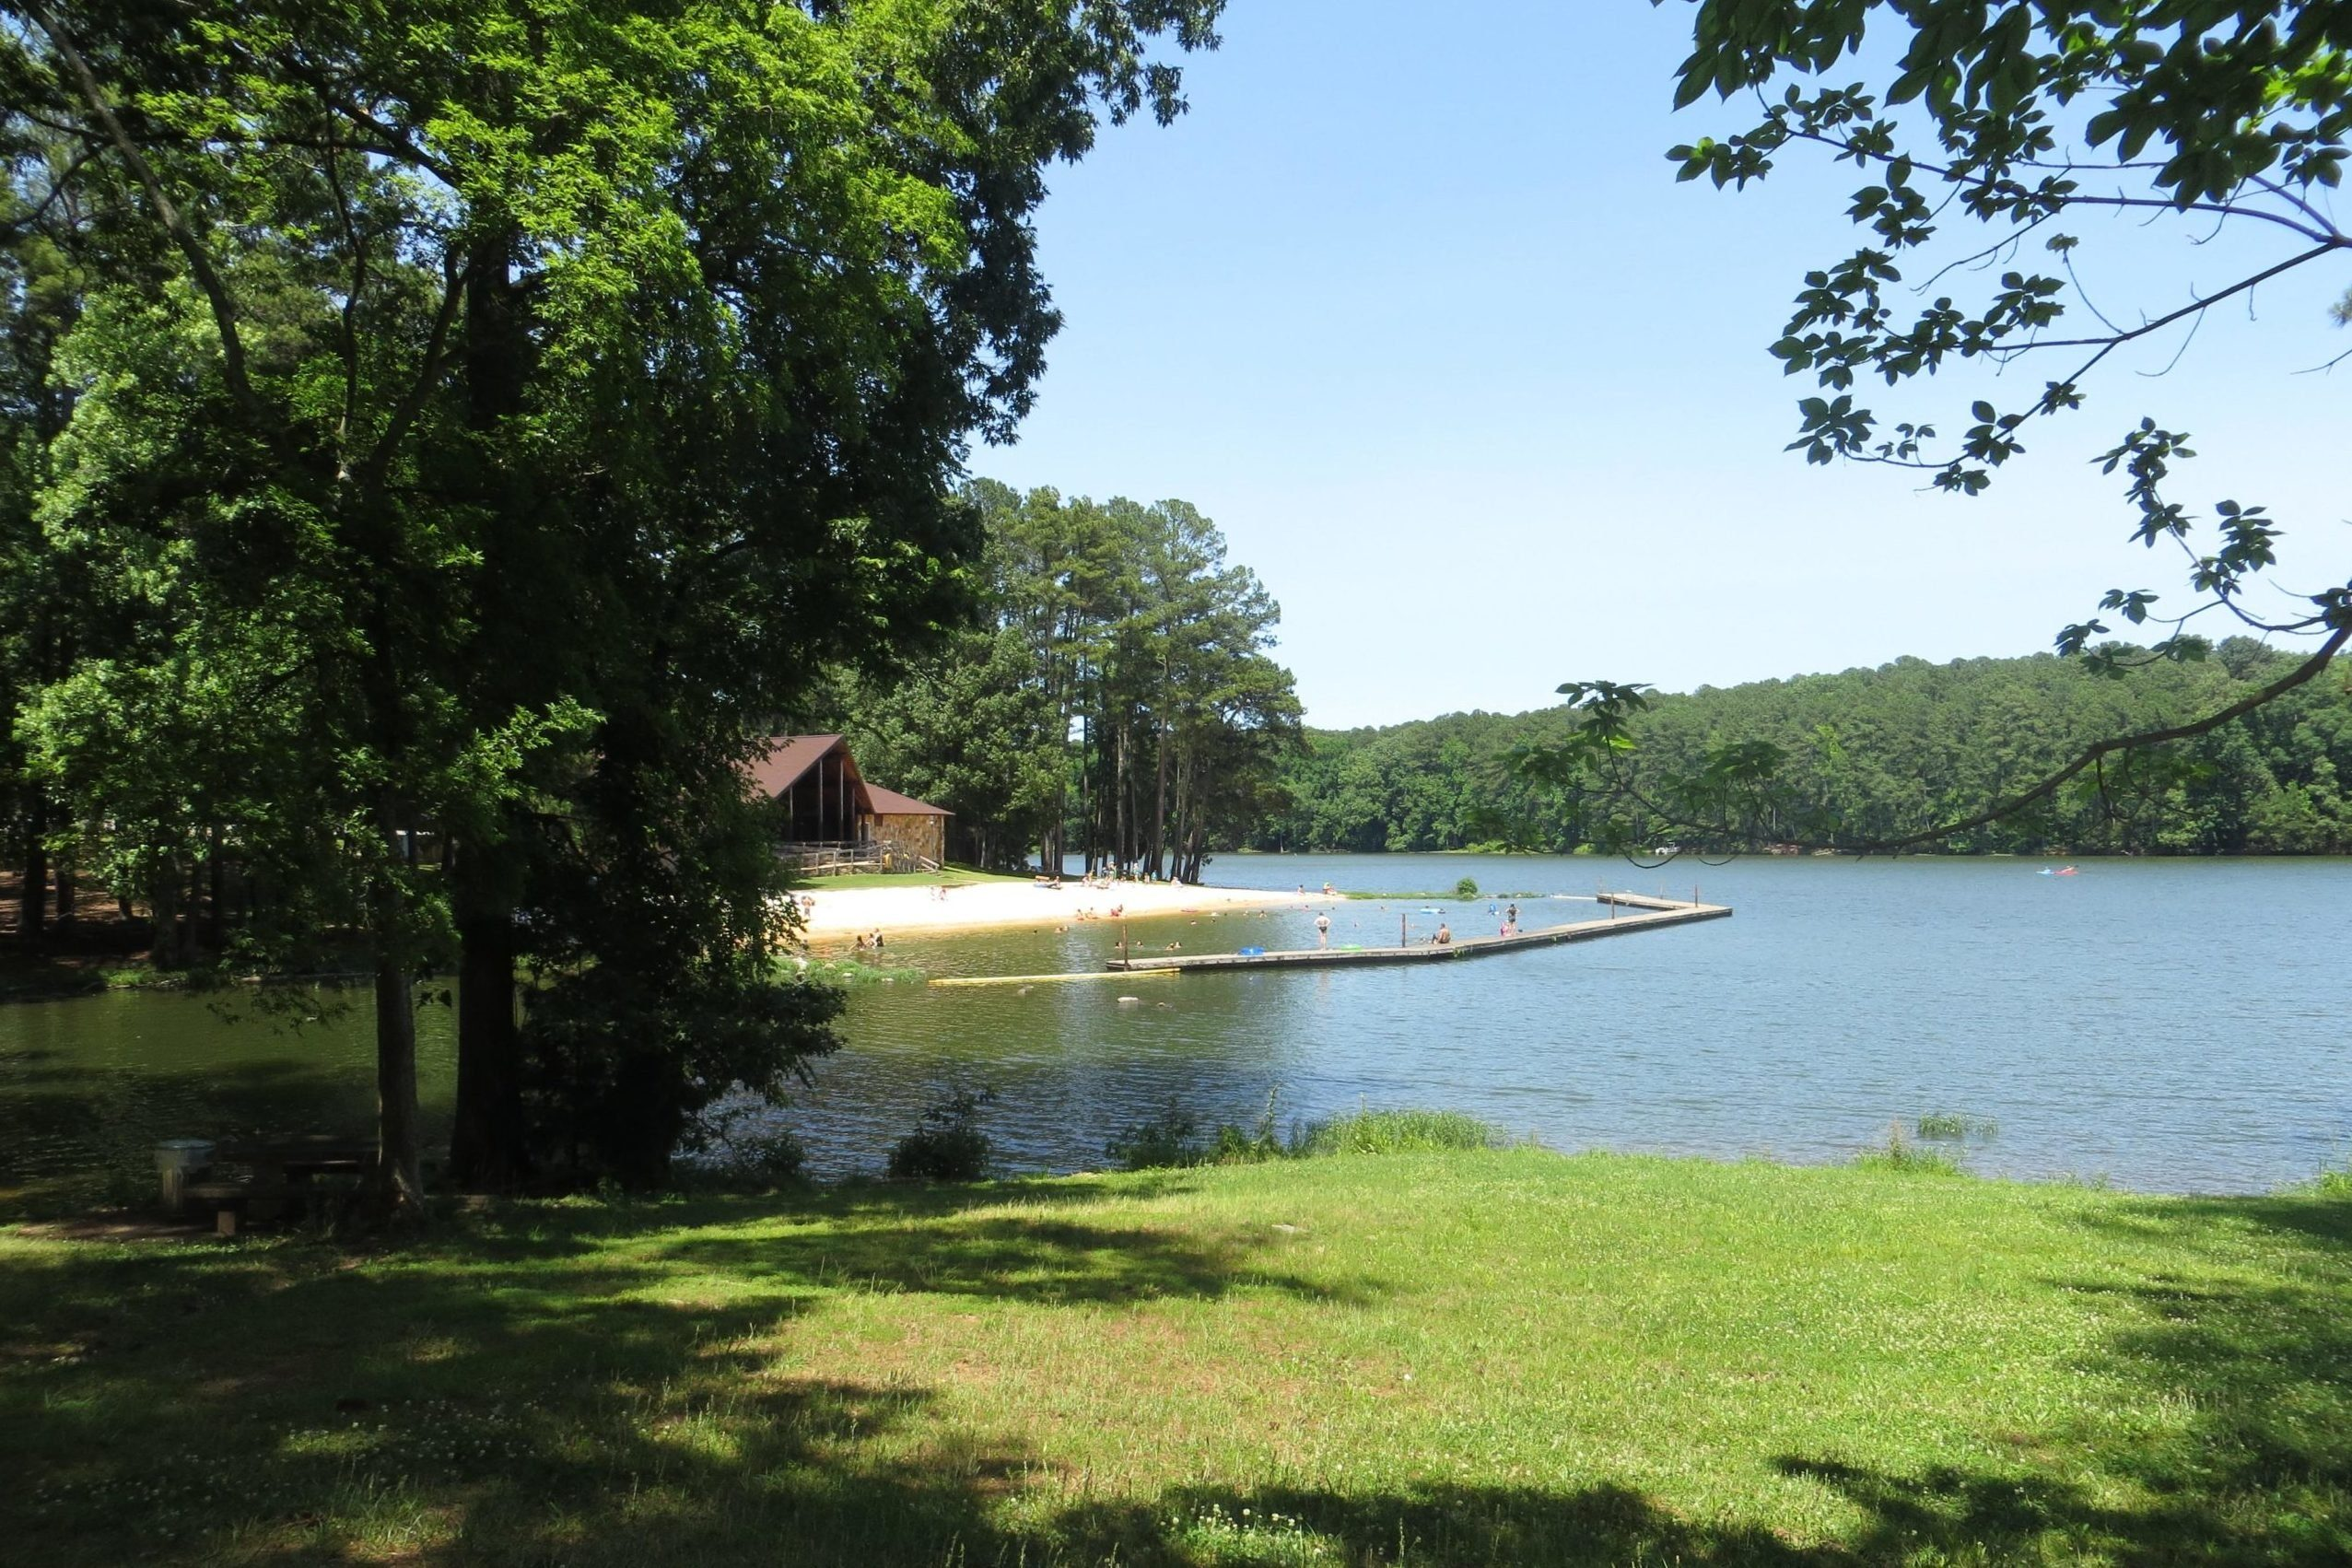 Alabama: Joe Wheeler State Park